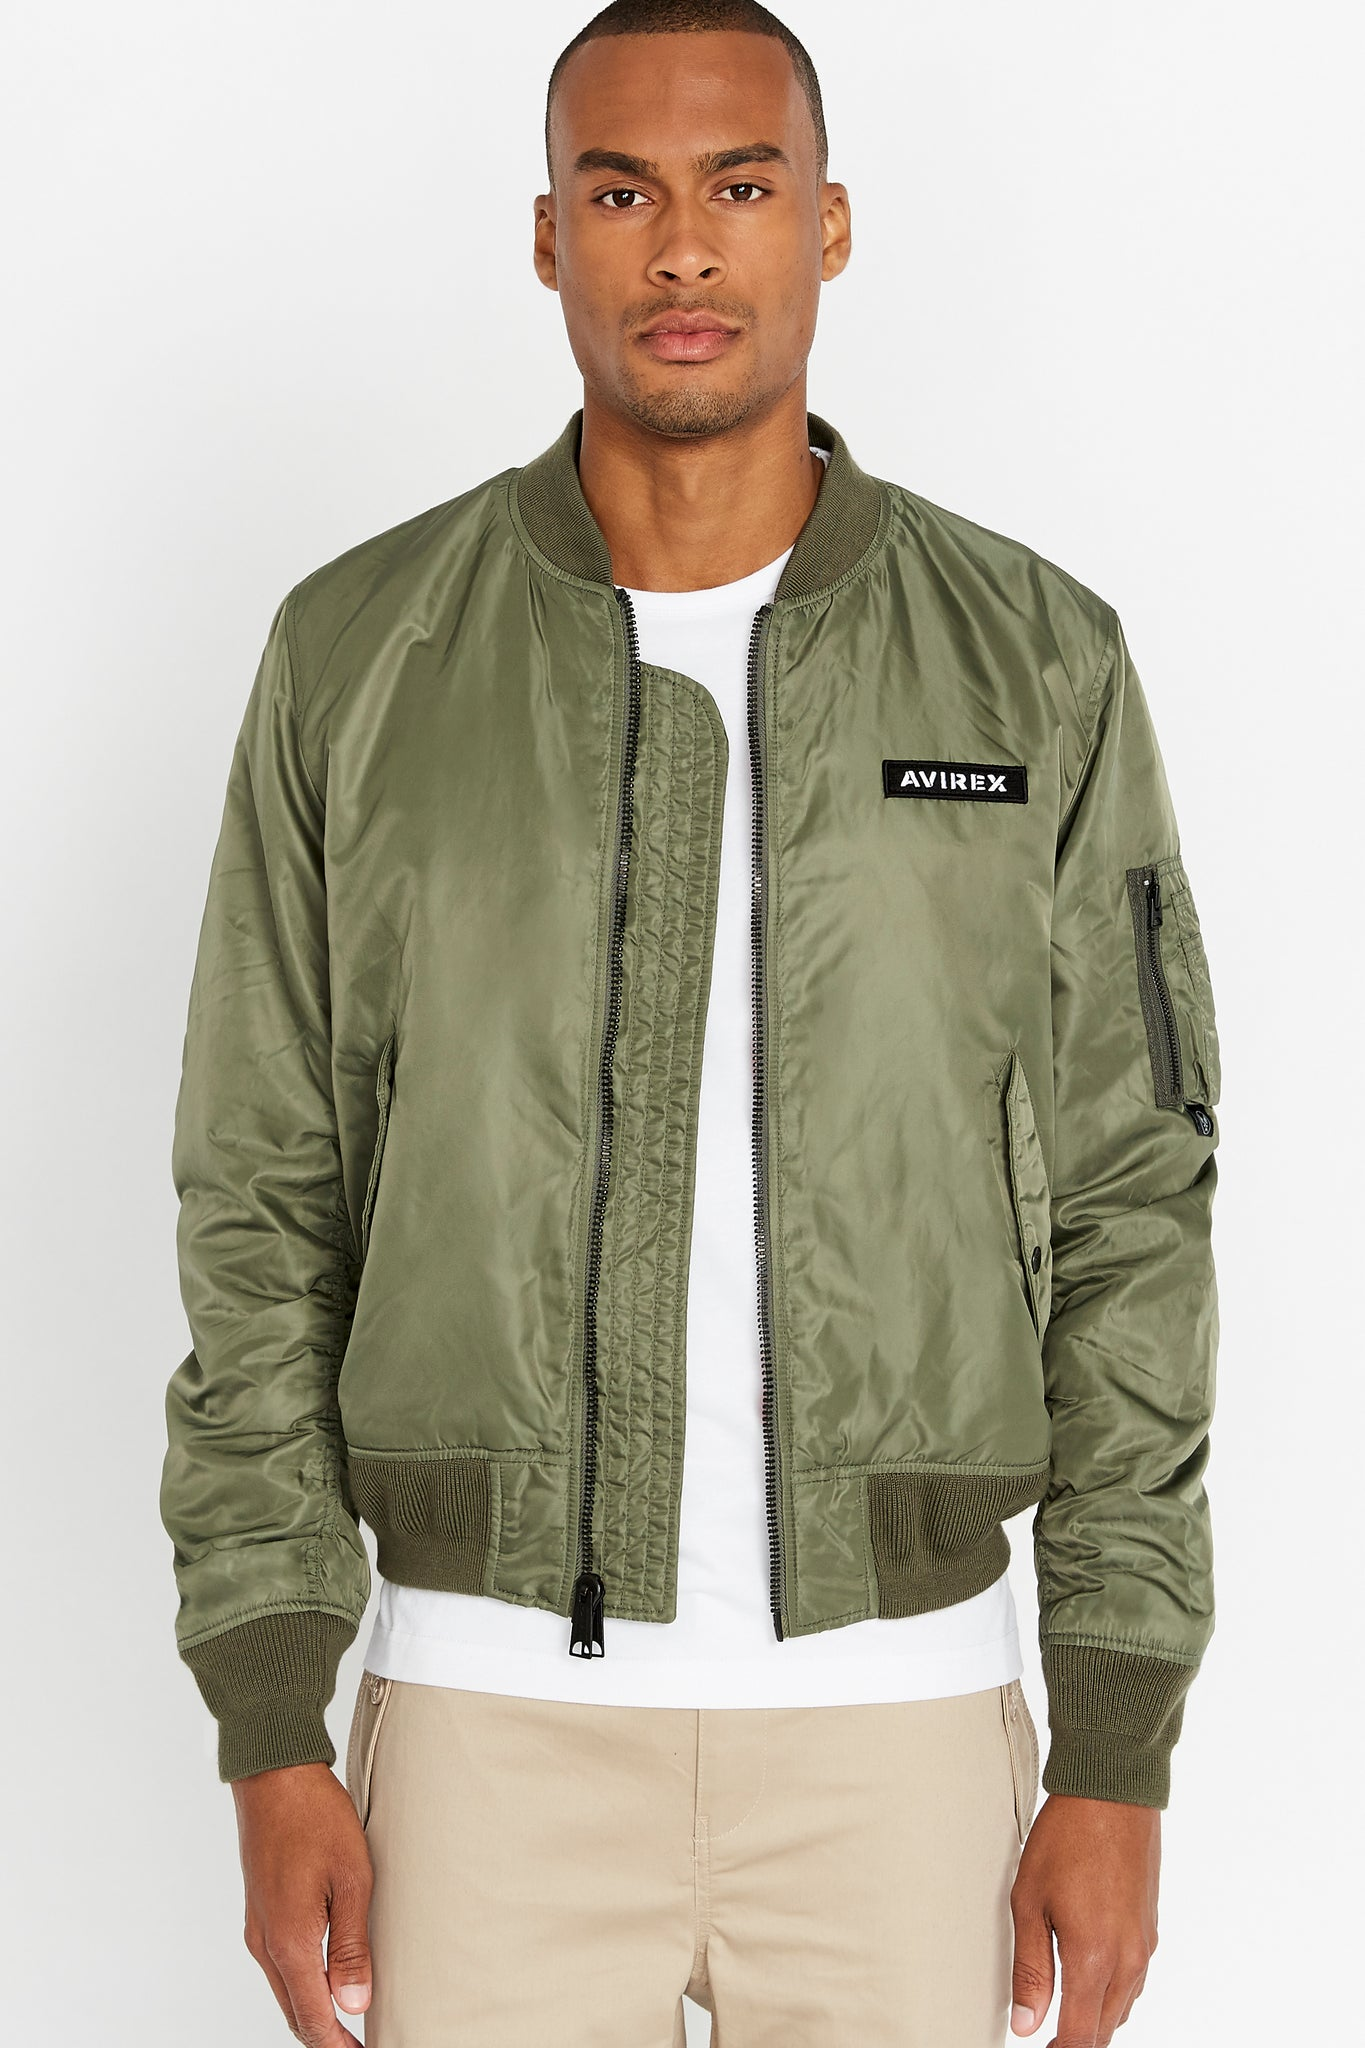 Front view of men wearing an open olive original aviation bomber nylon jacket with Iconic utility pocket on sleeve and two side pockets